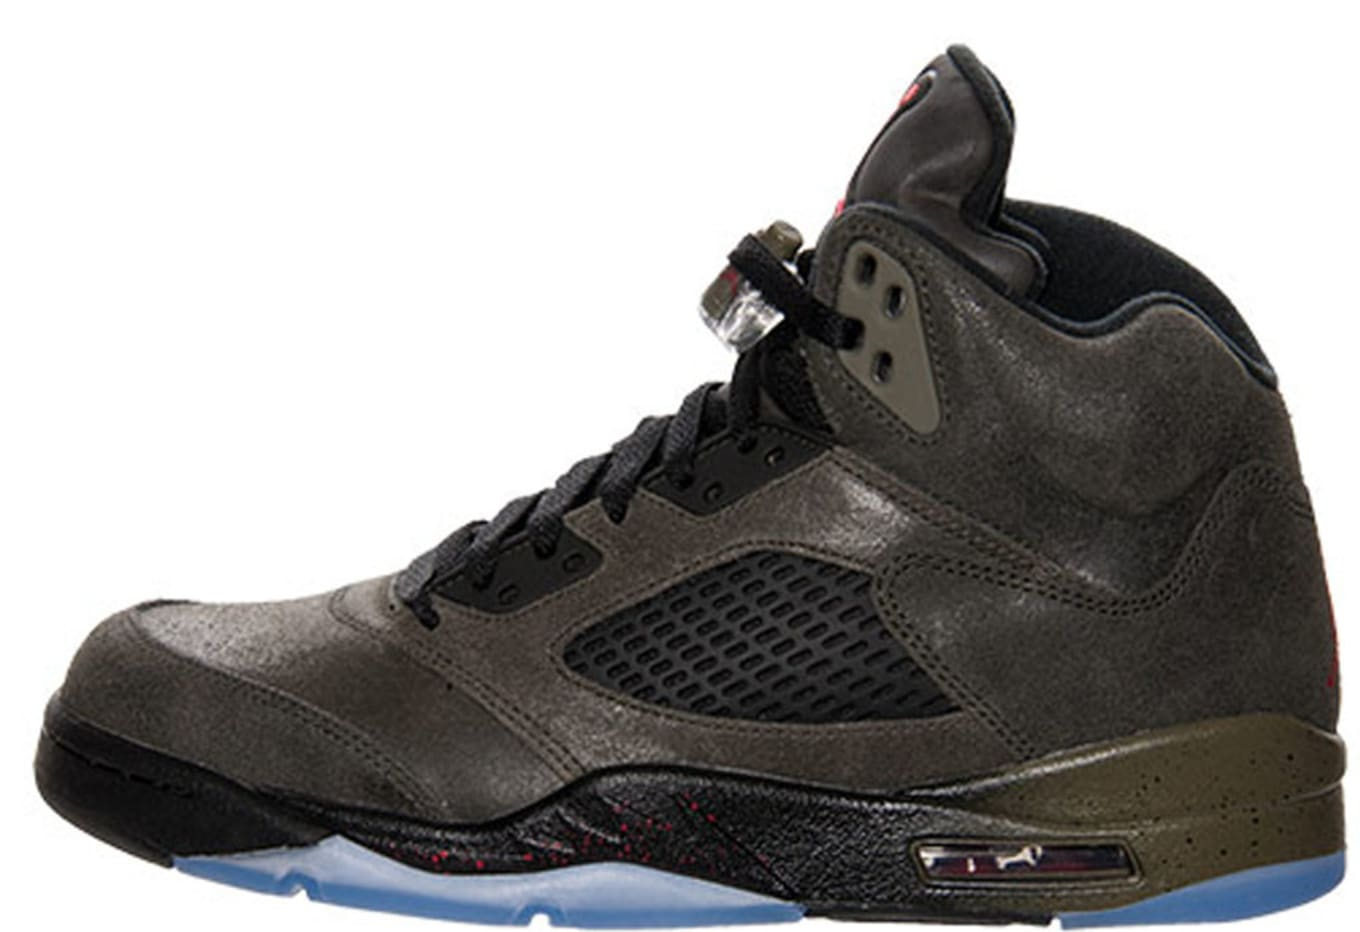 f2ed19af Air Jordan 5: The Definitive Guide to Colorways | Sole Collector